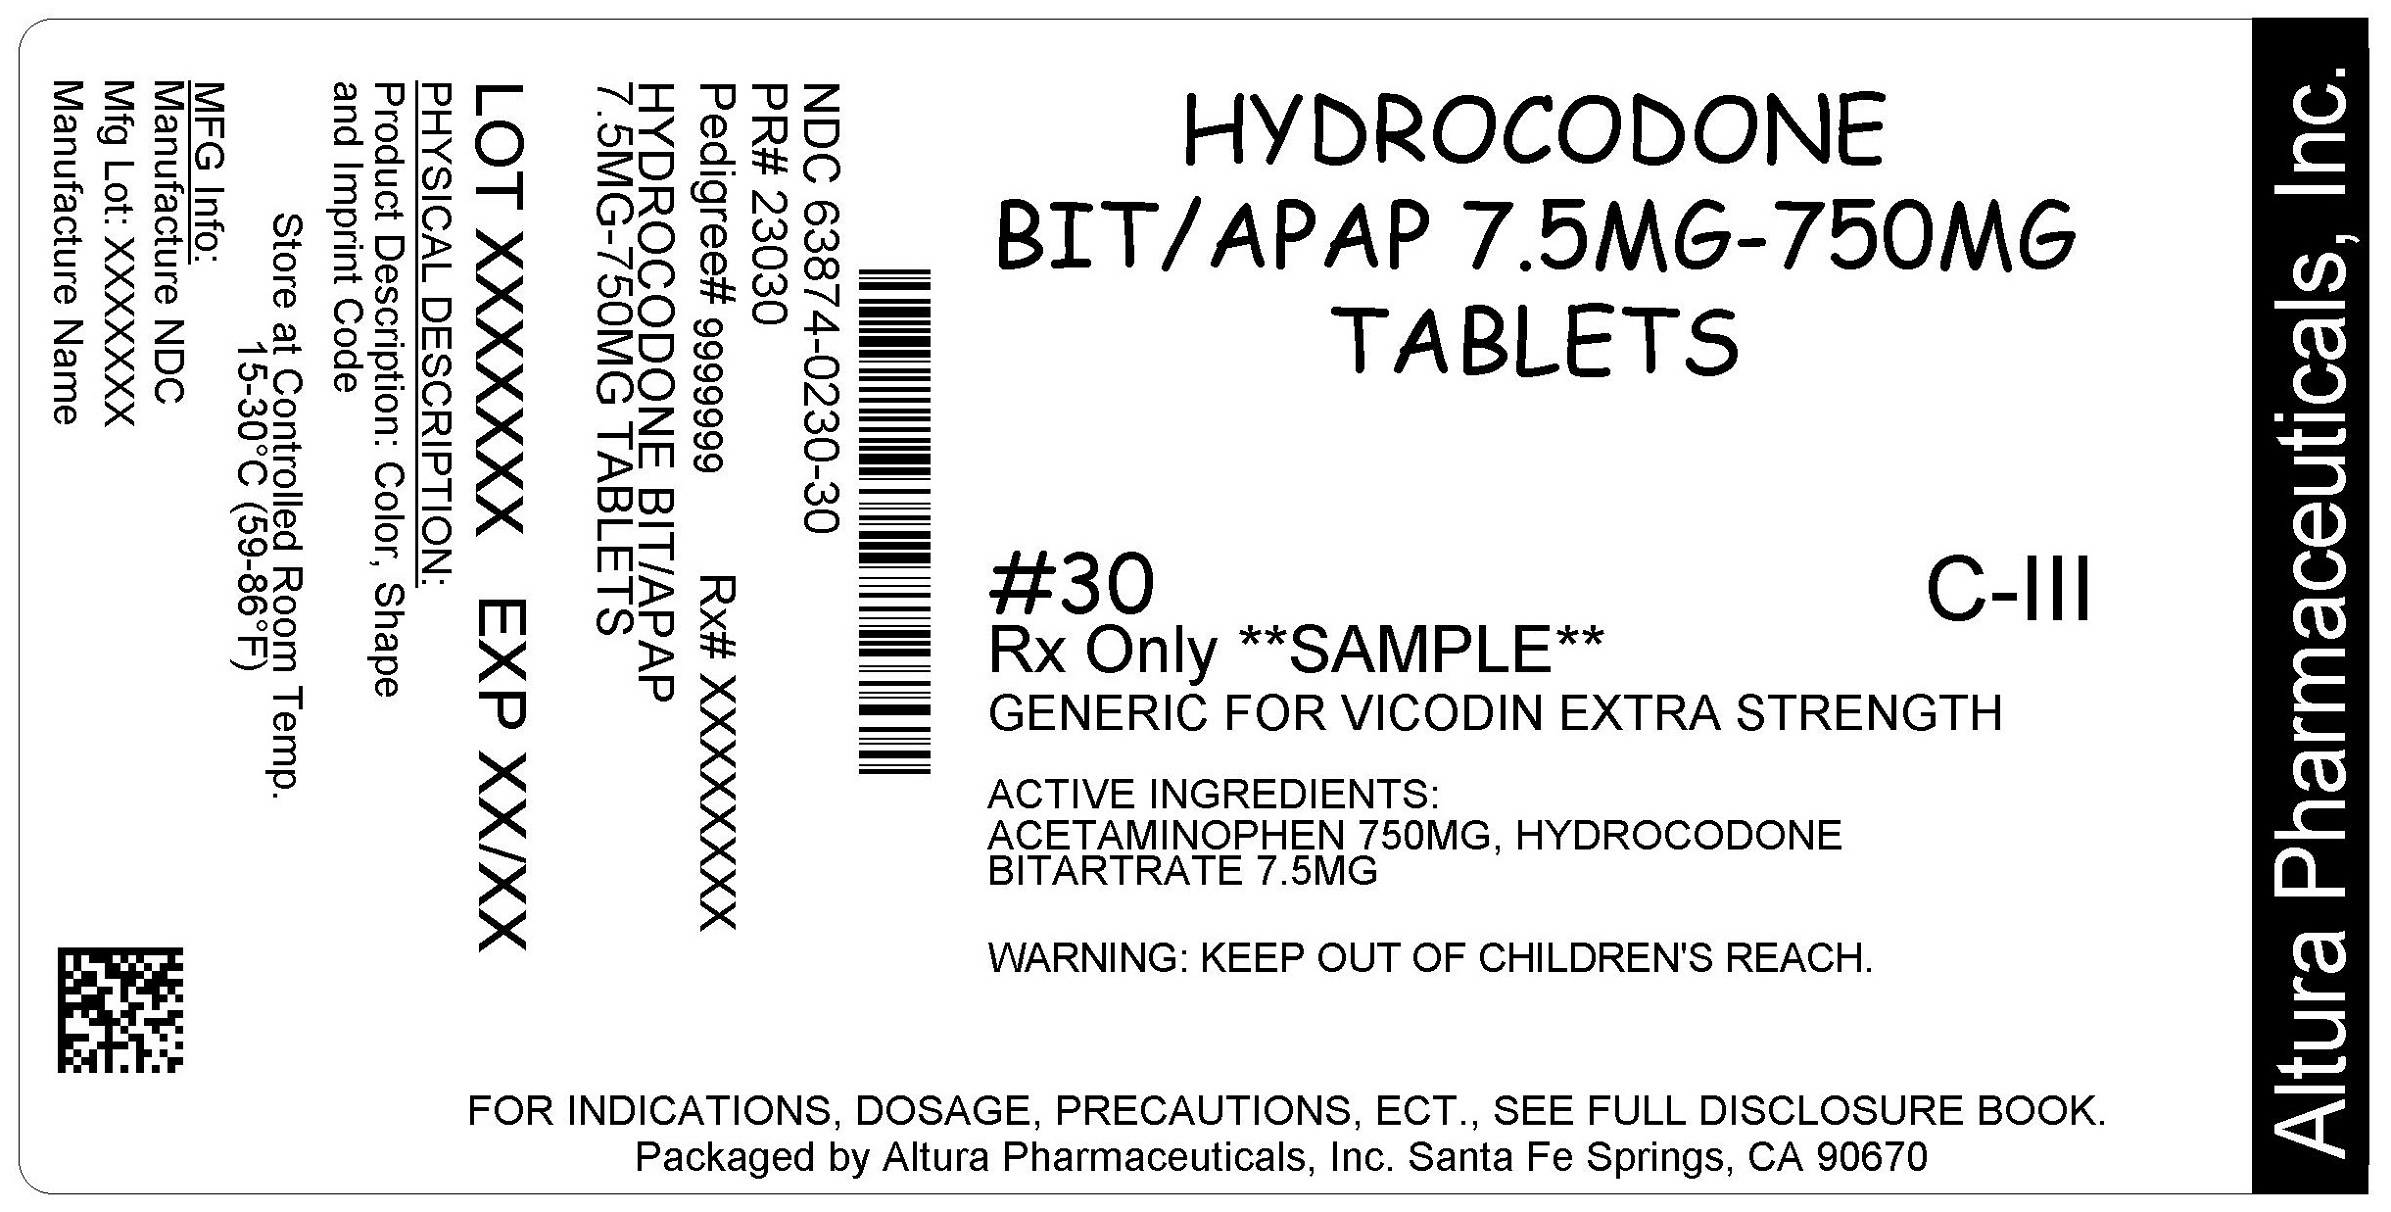 This is an image of the label for 7.5 mg/750 mg Hydrocodone Bitartrate and Acetaminophen Tablets.